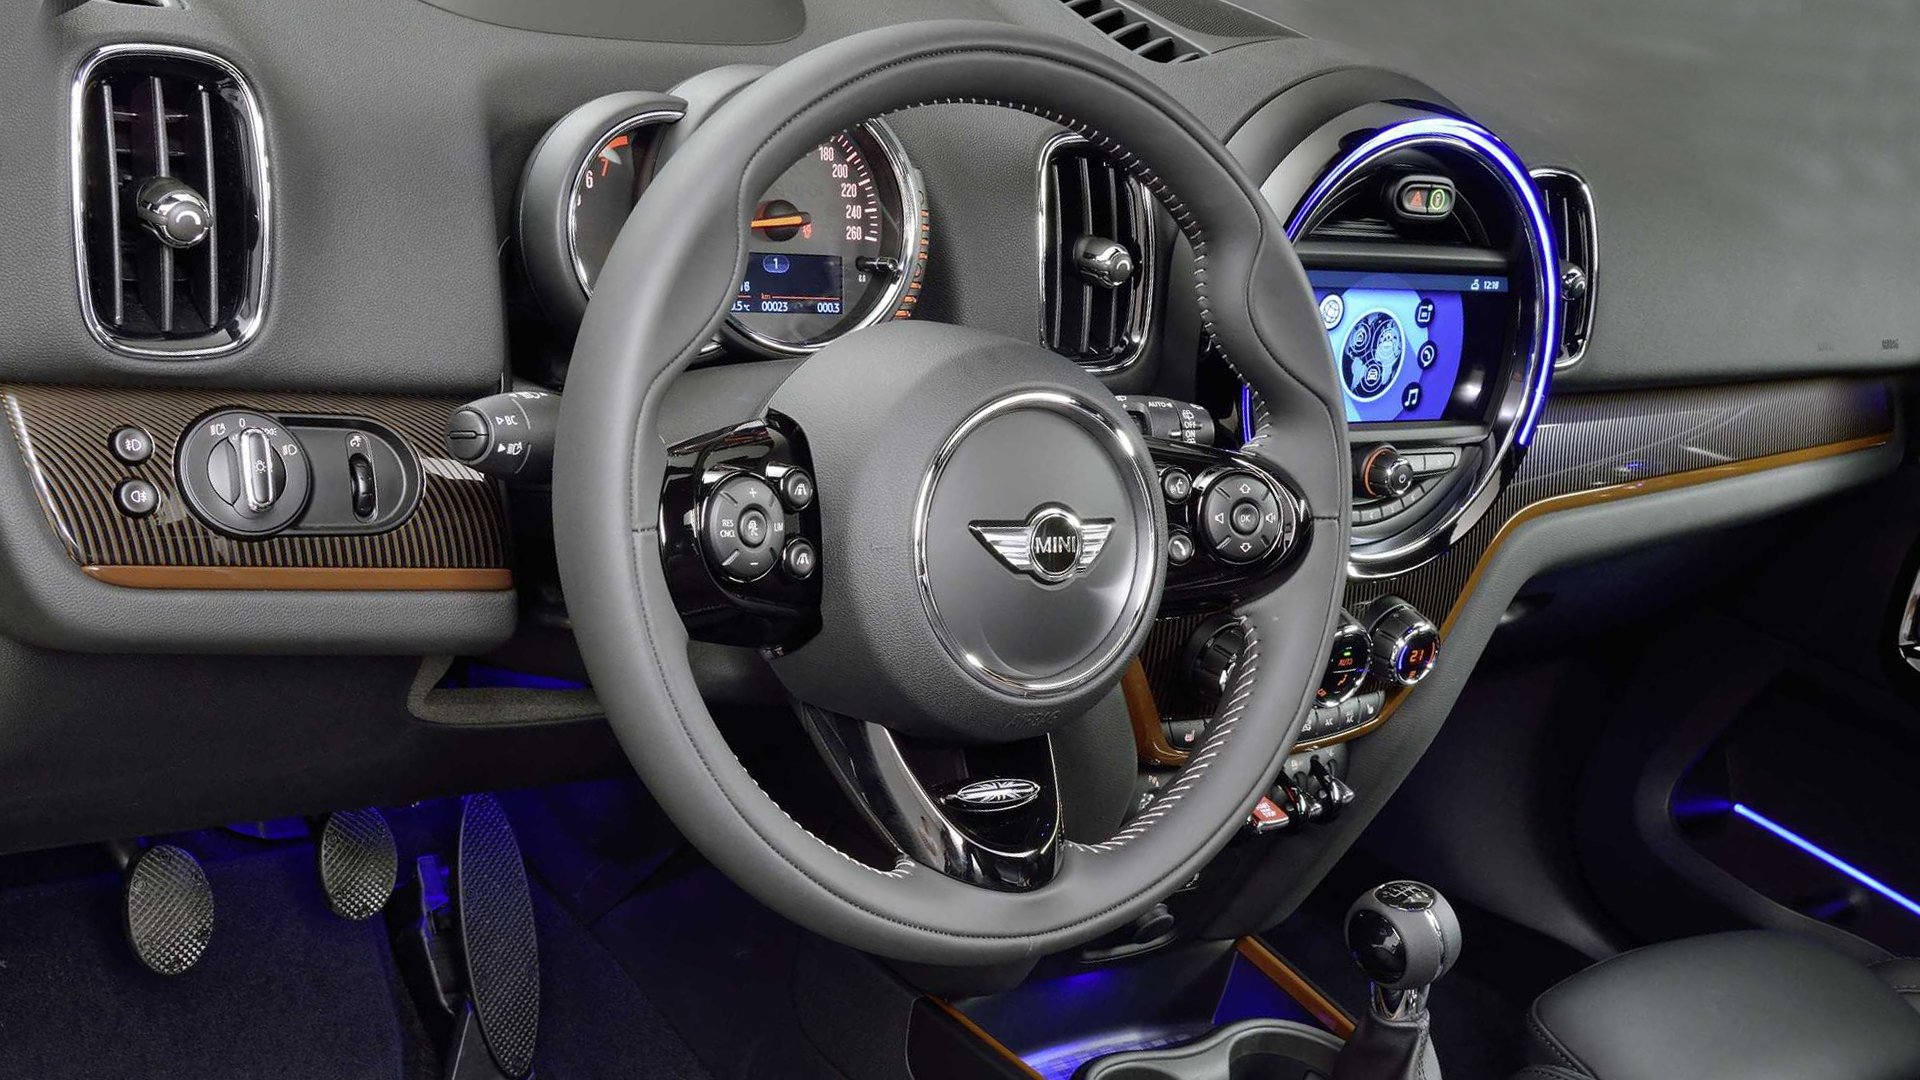 MINI Countryman Interior HD